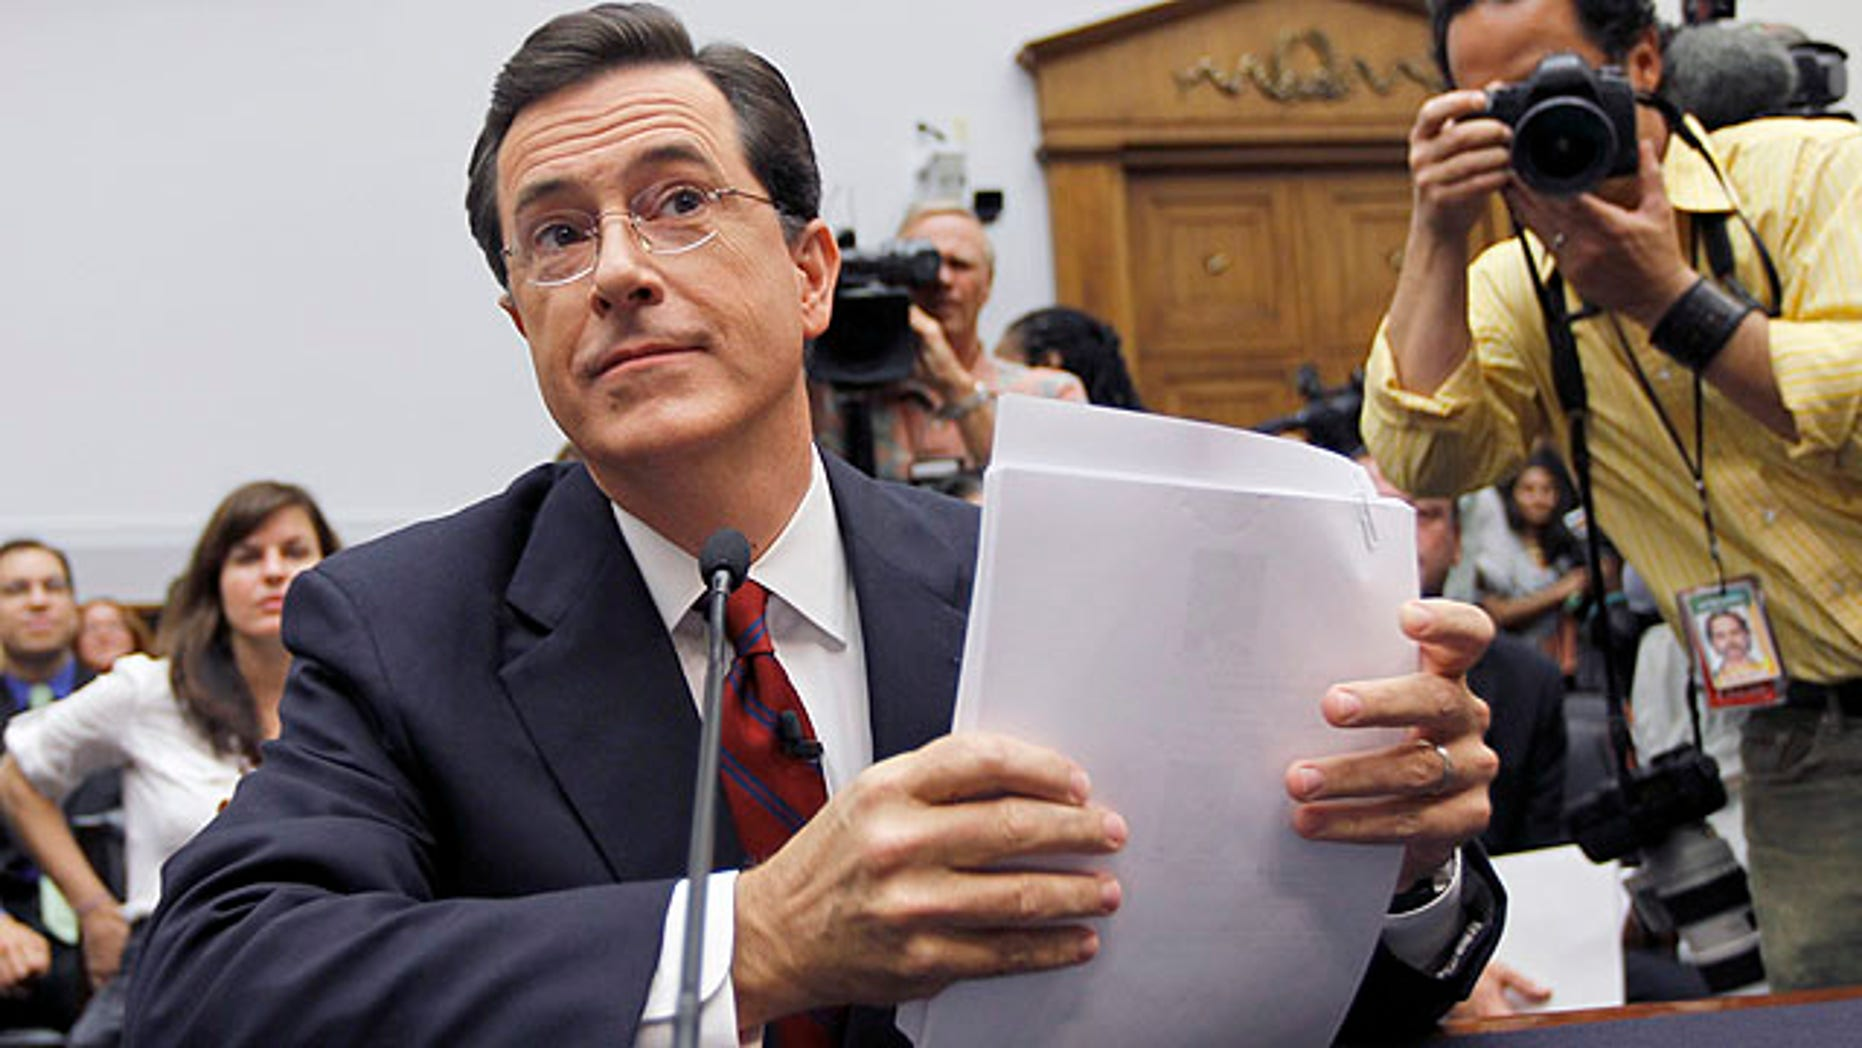 Sept. 24, 2010: Comedian Stephen Colbert prepares to testify on Capitol Hill before the House Immigration, Citizenship, Refugees, Border Security and International Law subcommittee hearing on Protecting America's Harvest (AP).